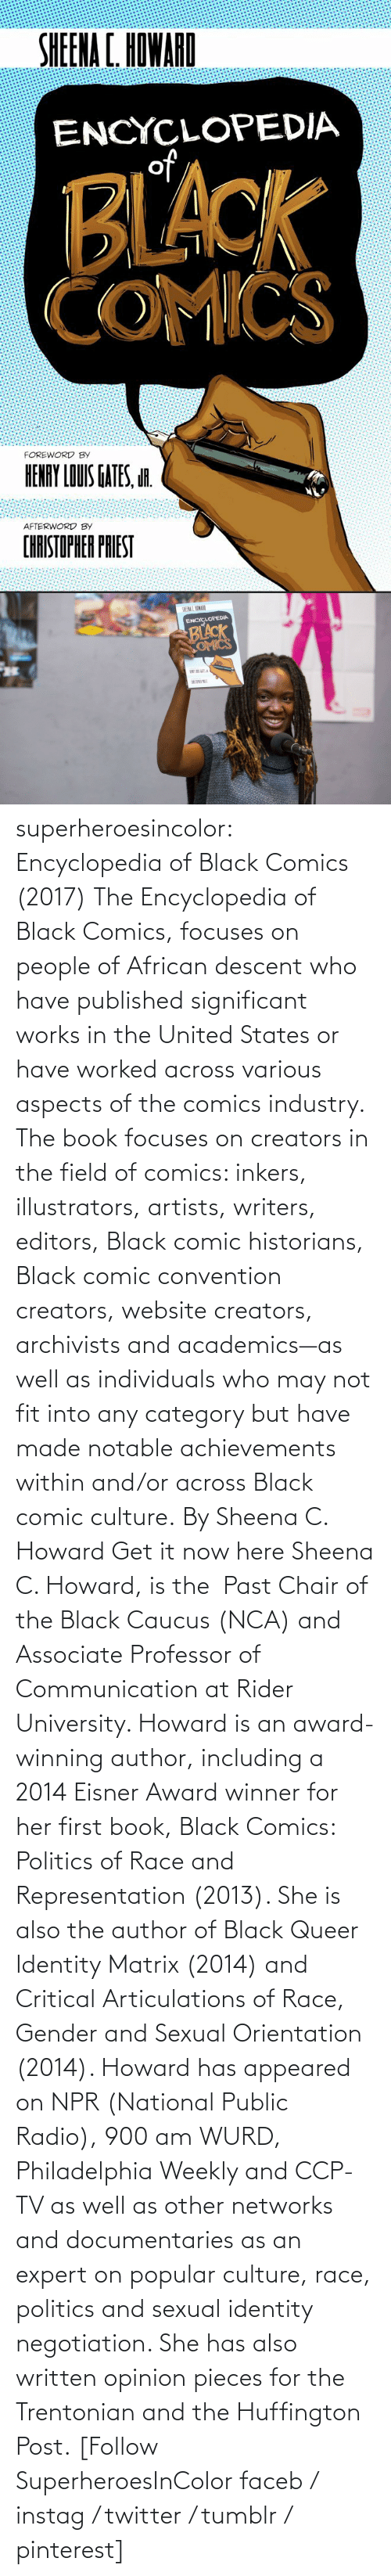 Pieces: superheroesincolor: Encyclopedia of Black Comics (2017) The Encyclopedia of Black Comics, focuses on people of African descent who have published significant works in the United States or have worked across various aspects of the comics industry.  The book focuses on creators in the field of comics: inkers, illustrators, artists, writers, editors, Black comic historians, Black comic convention creators, website creators, archivists and academics—as well as individuals who may not fit into any category but have made notable achievements within and/or across Black comic culture. By Sheena C. Howard Get it now here  Sheena C. Howard, is the  Past Chair of the Black Caucus (NCA) and Associate Professor of Communication at Rider University. Howard is an award-winning author, including a 2014 Eisner Award winner for her first book, Black Comics: Politics of Race and Representation (2013). She is also the author of Black Queer Identity Matrix (2014) and Critical Articulations of Race, Gender and Sexual Orientation (2014). Howard has appeared on NPR (National Public Radio), 900 am WURD, Philadelphia Weekly and CCP-TV as well as other networks and documentaries as an expert on popular culture, race, politics and sexual identity negotiation. She has also written opinion pieces for the Trentonian and the Huffington Post.   [Follow SuperheroesInColor faceb / instag / twitter / tumblr / pinterest]